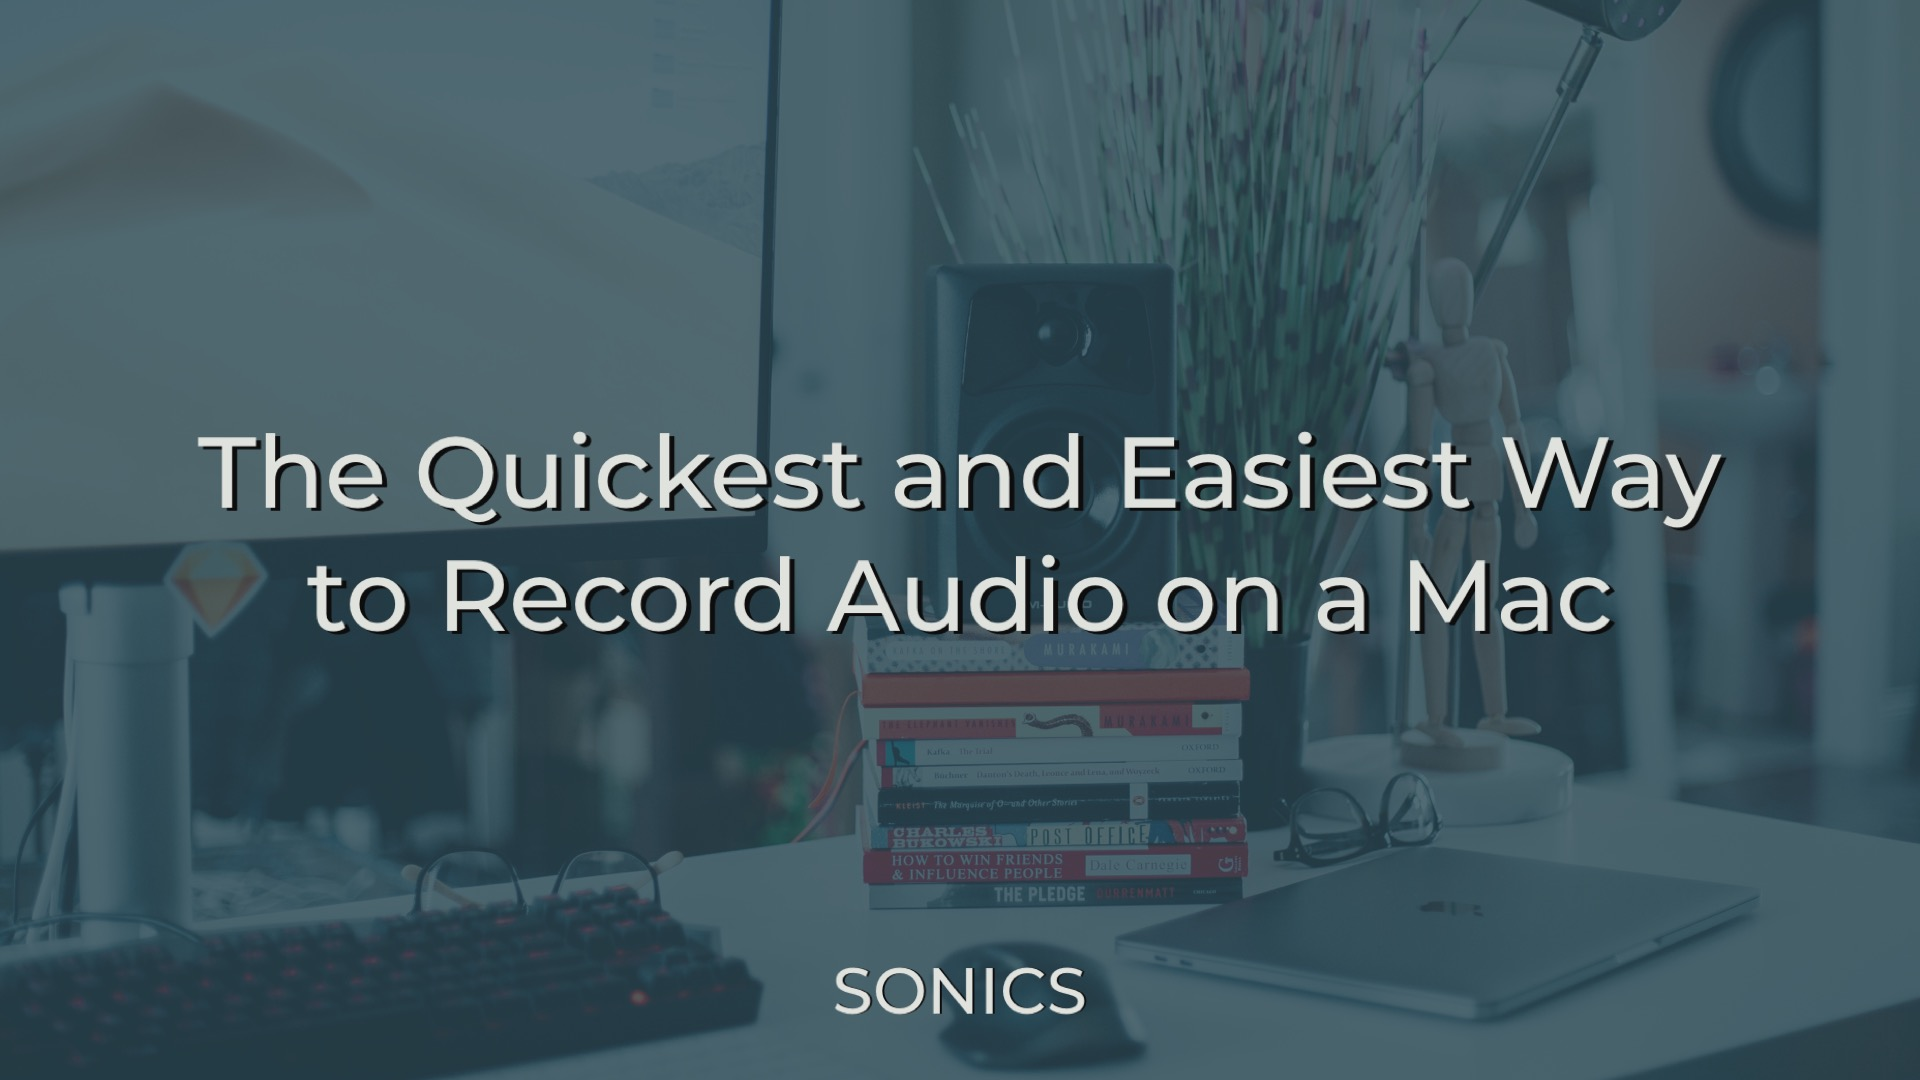 Recording Audio in QuickTime